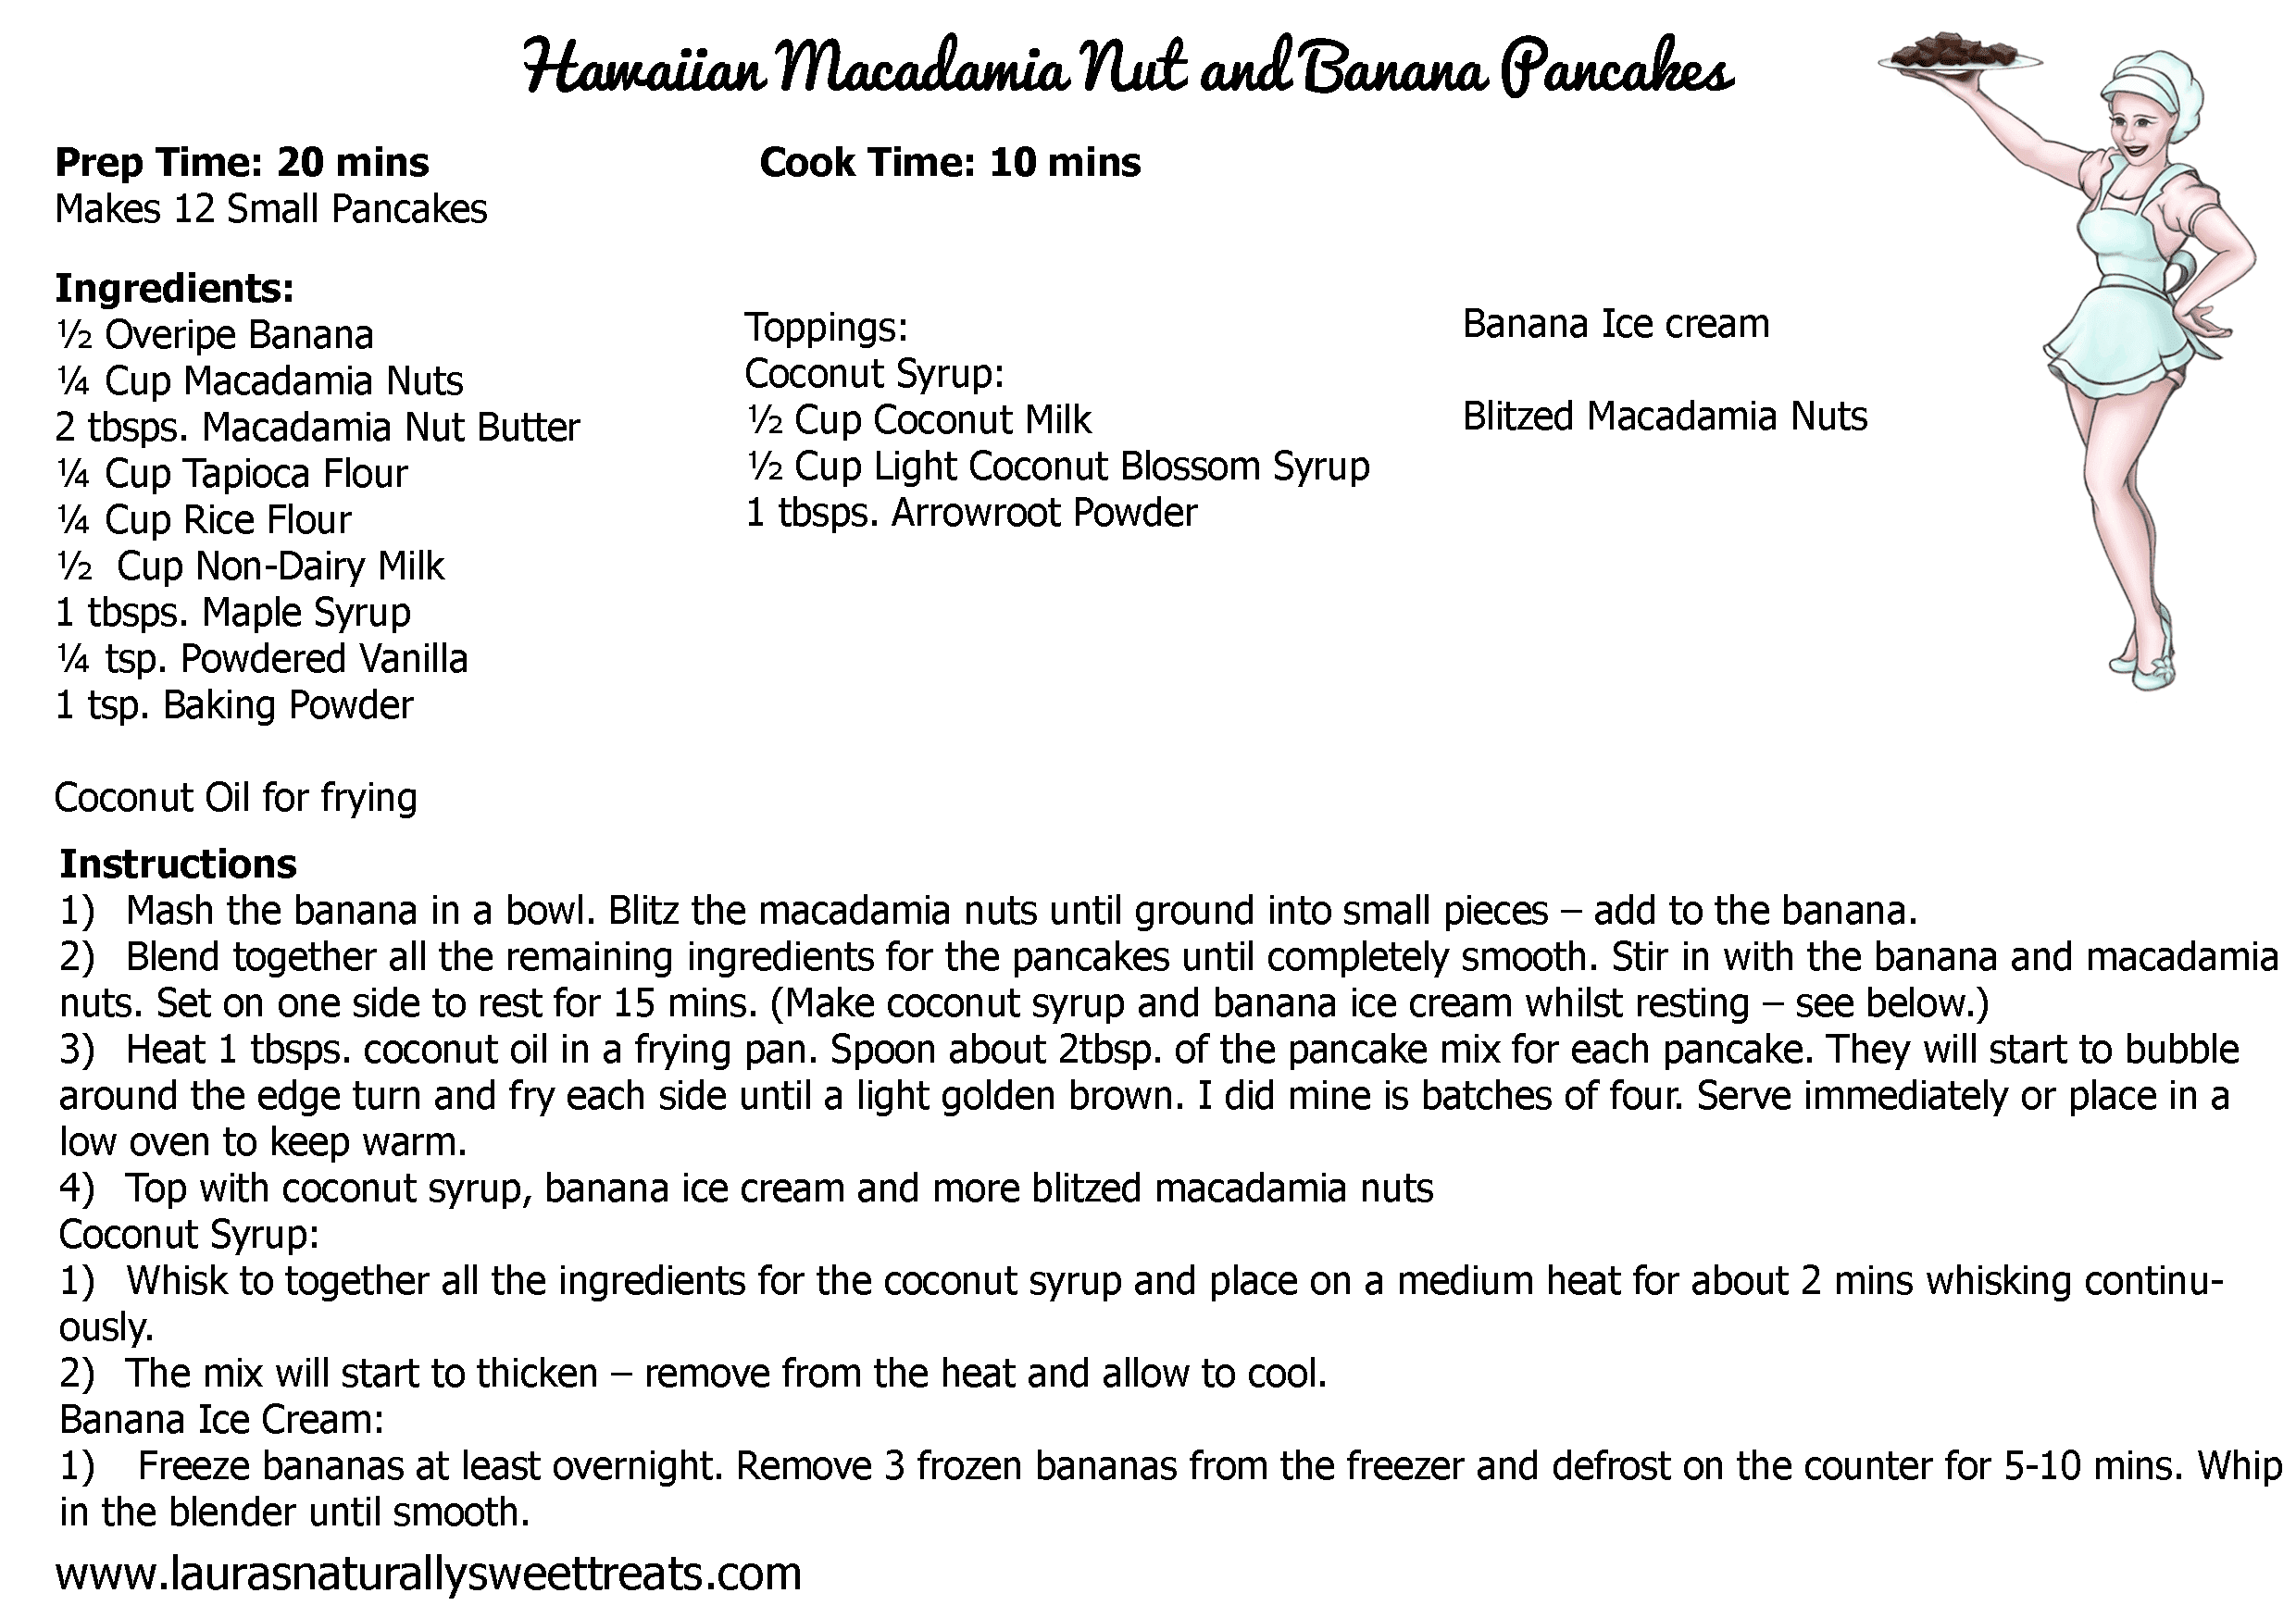 hawaiian macadamia nut and banana pancakes recipe card